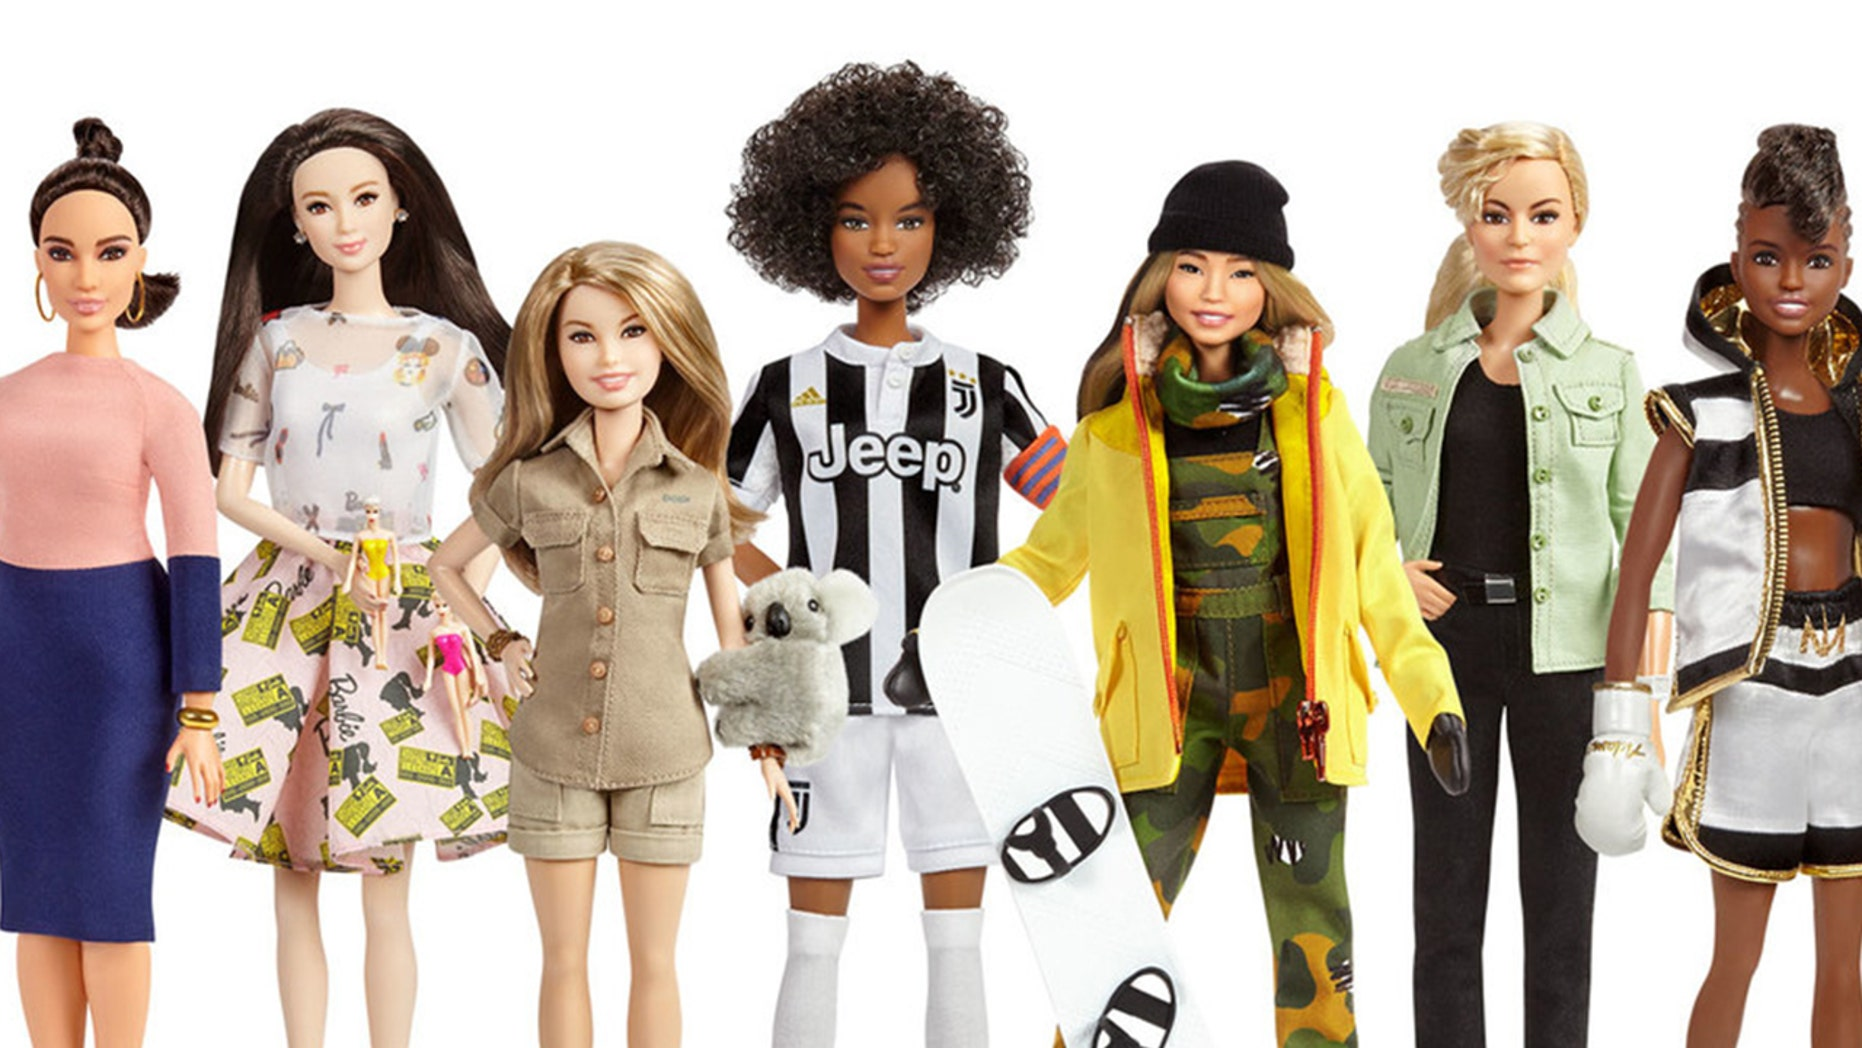 Barbie just released 17 new dolls inspired by real-life groundbreaking women from a variety of fields.